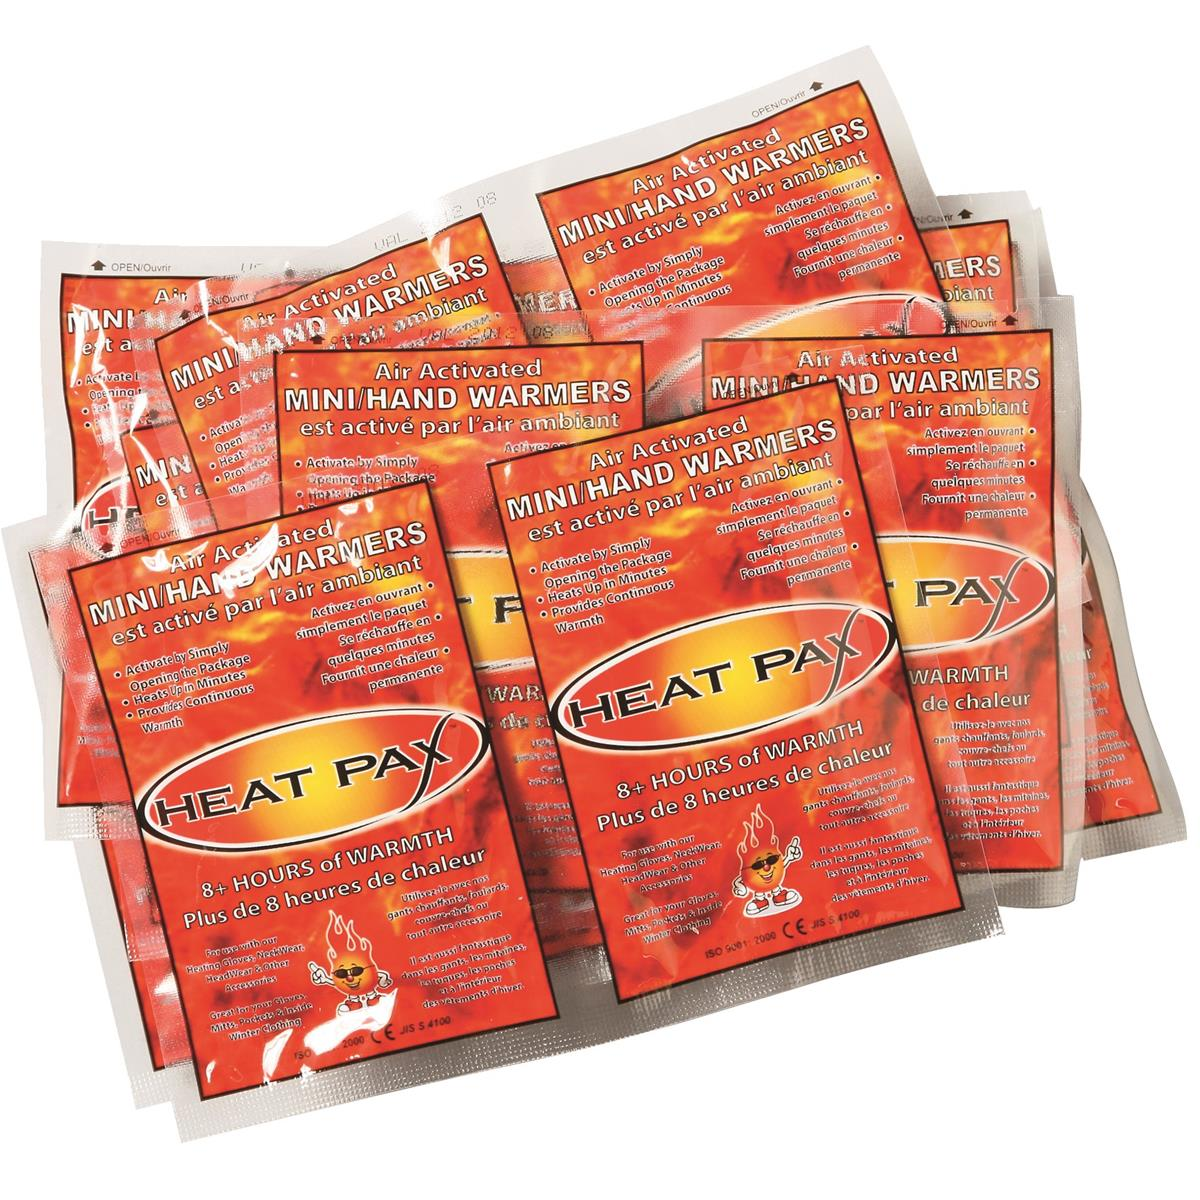 Heat Pax Hand & Toe Warmers